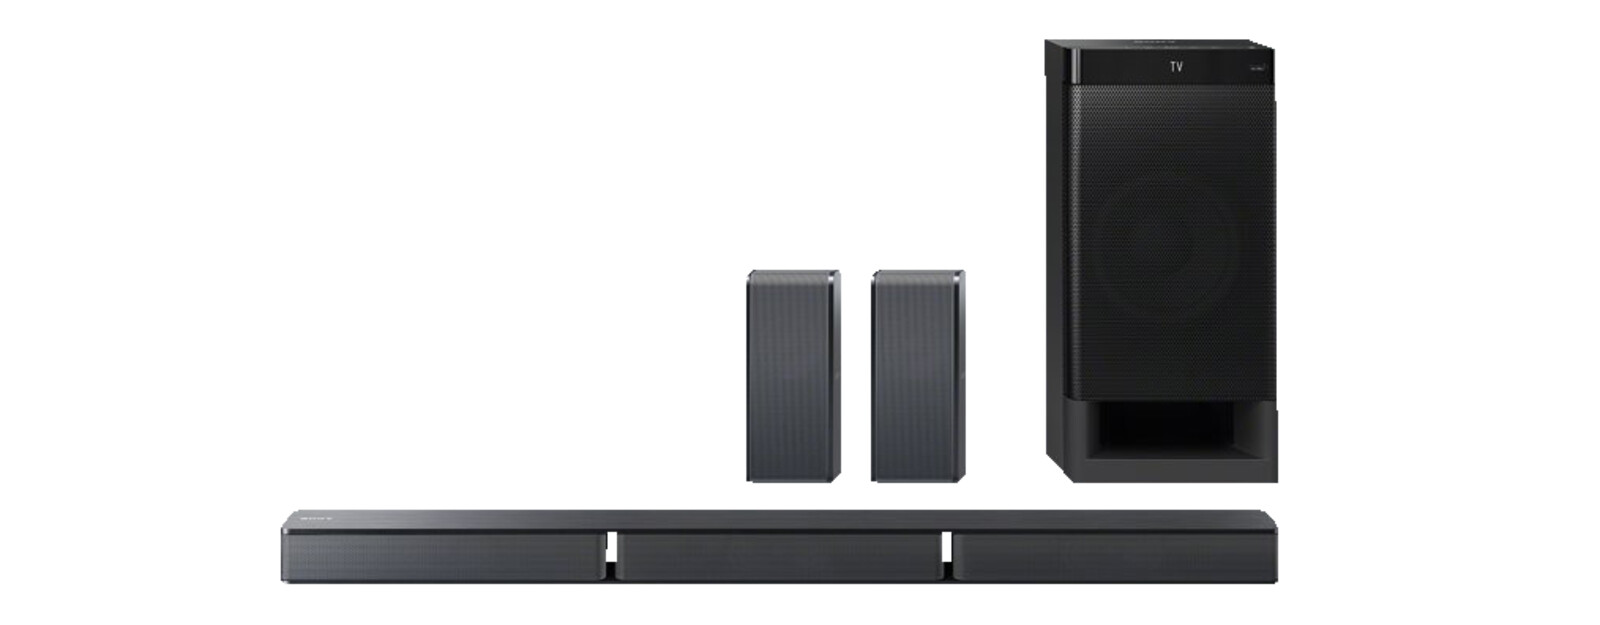 sony ht rt3 soundbar 600 watt bluetooth schwarz ebay. Black Bedroom Furniture Sets. Home Design Ideas